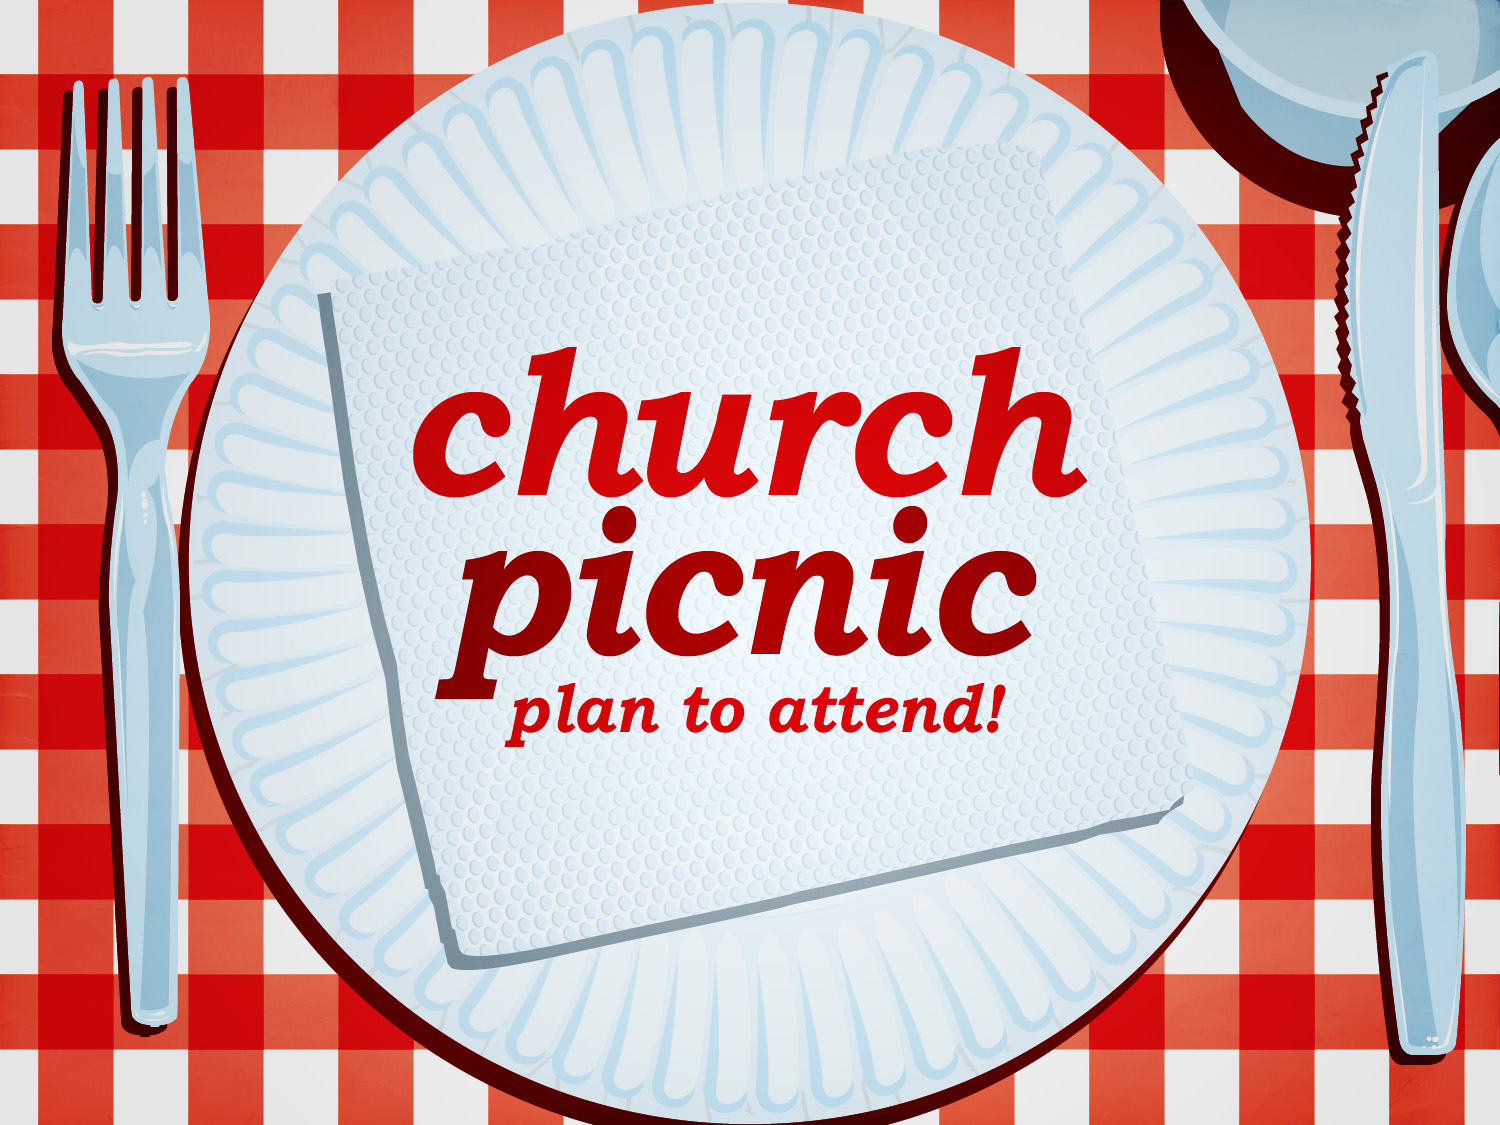 church-picnic-background.jpg